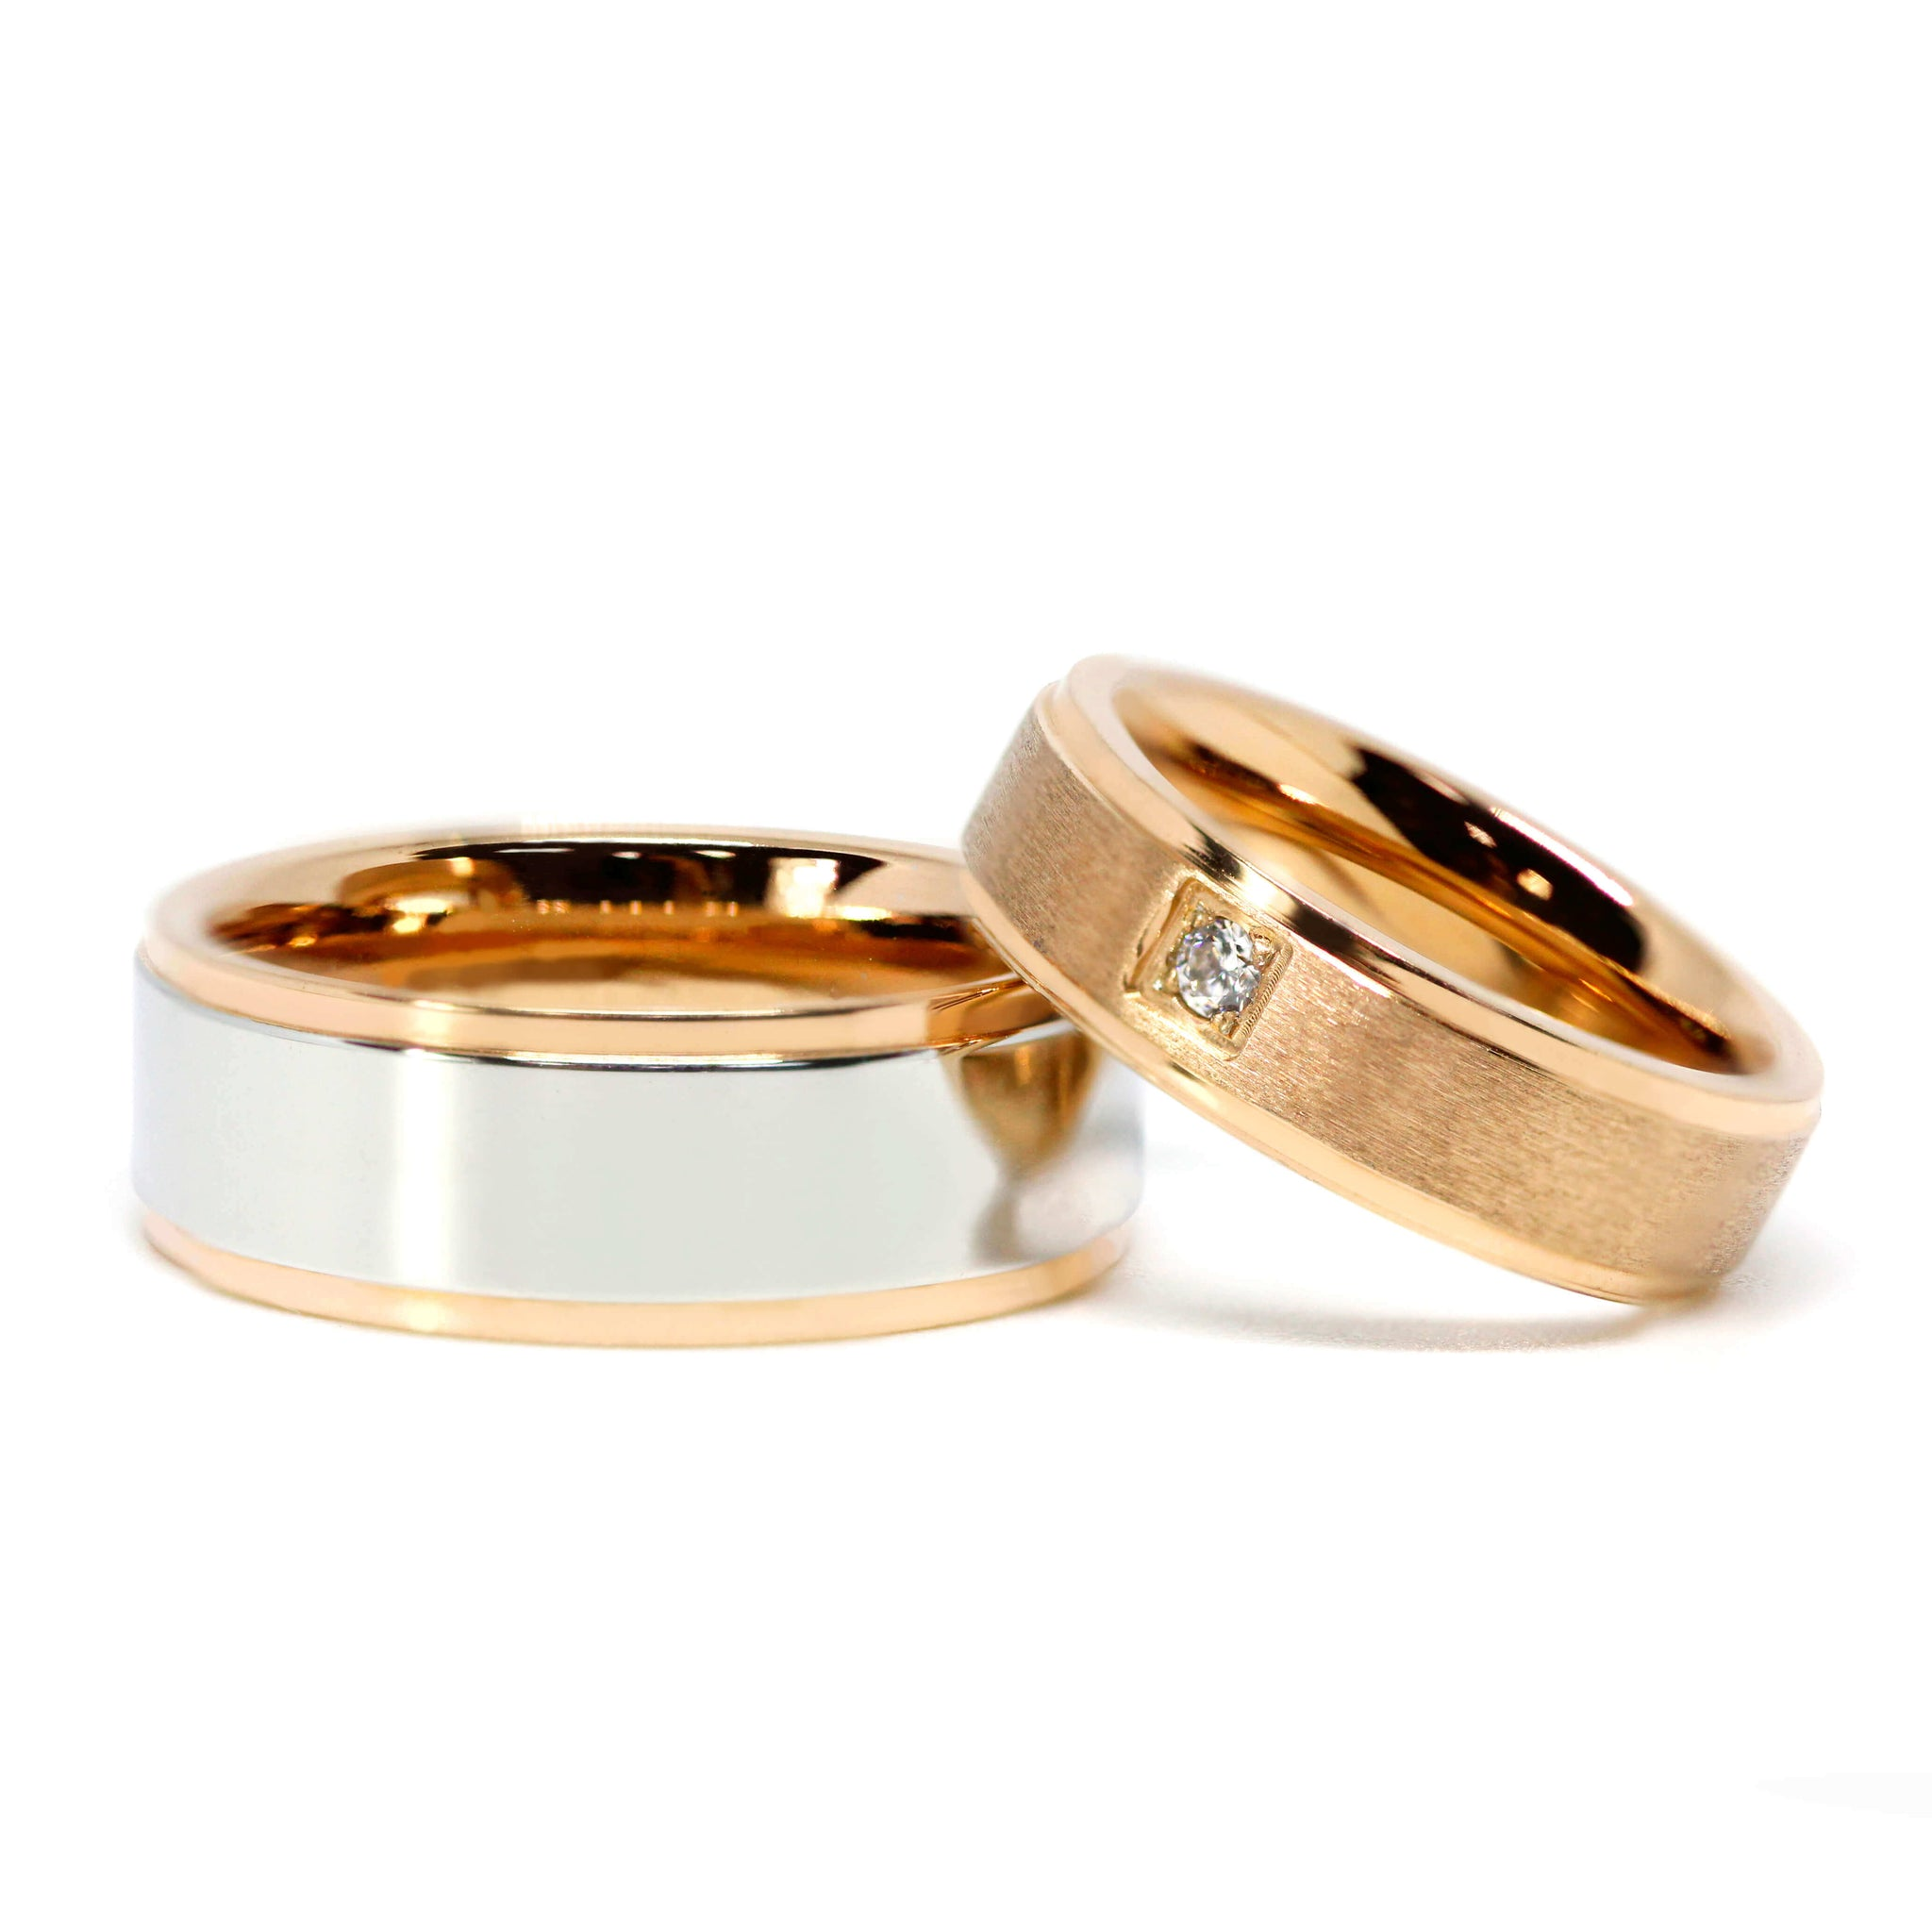 18K Dual Gold Matching Wedding Rings with Moissanite